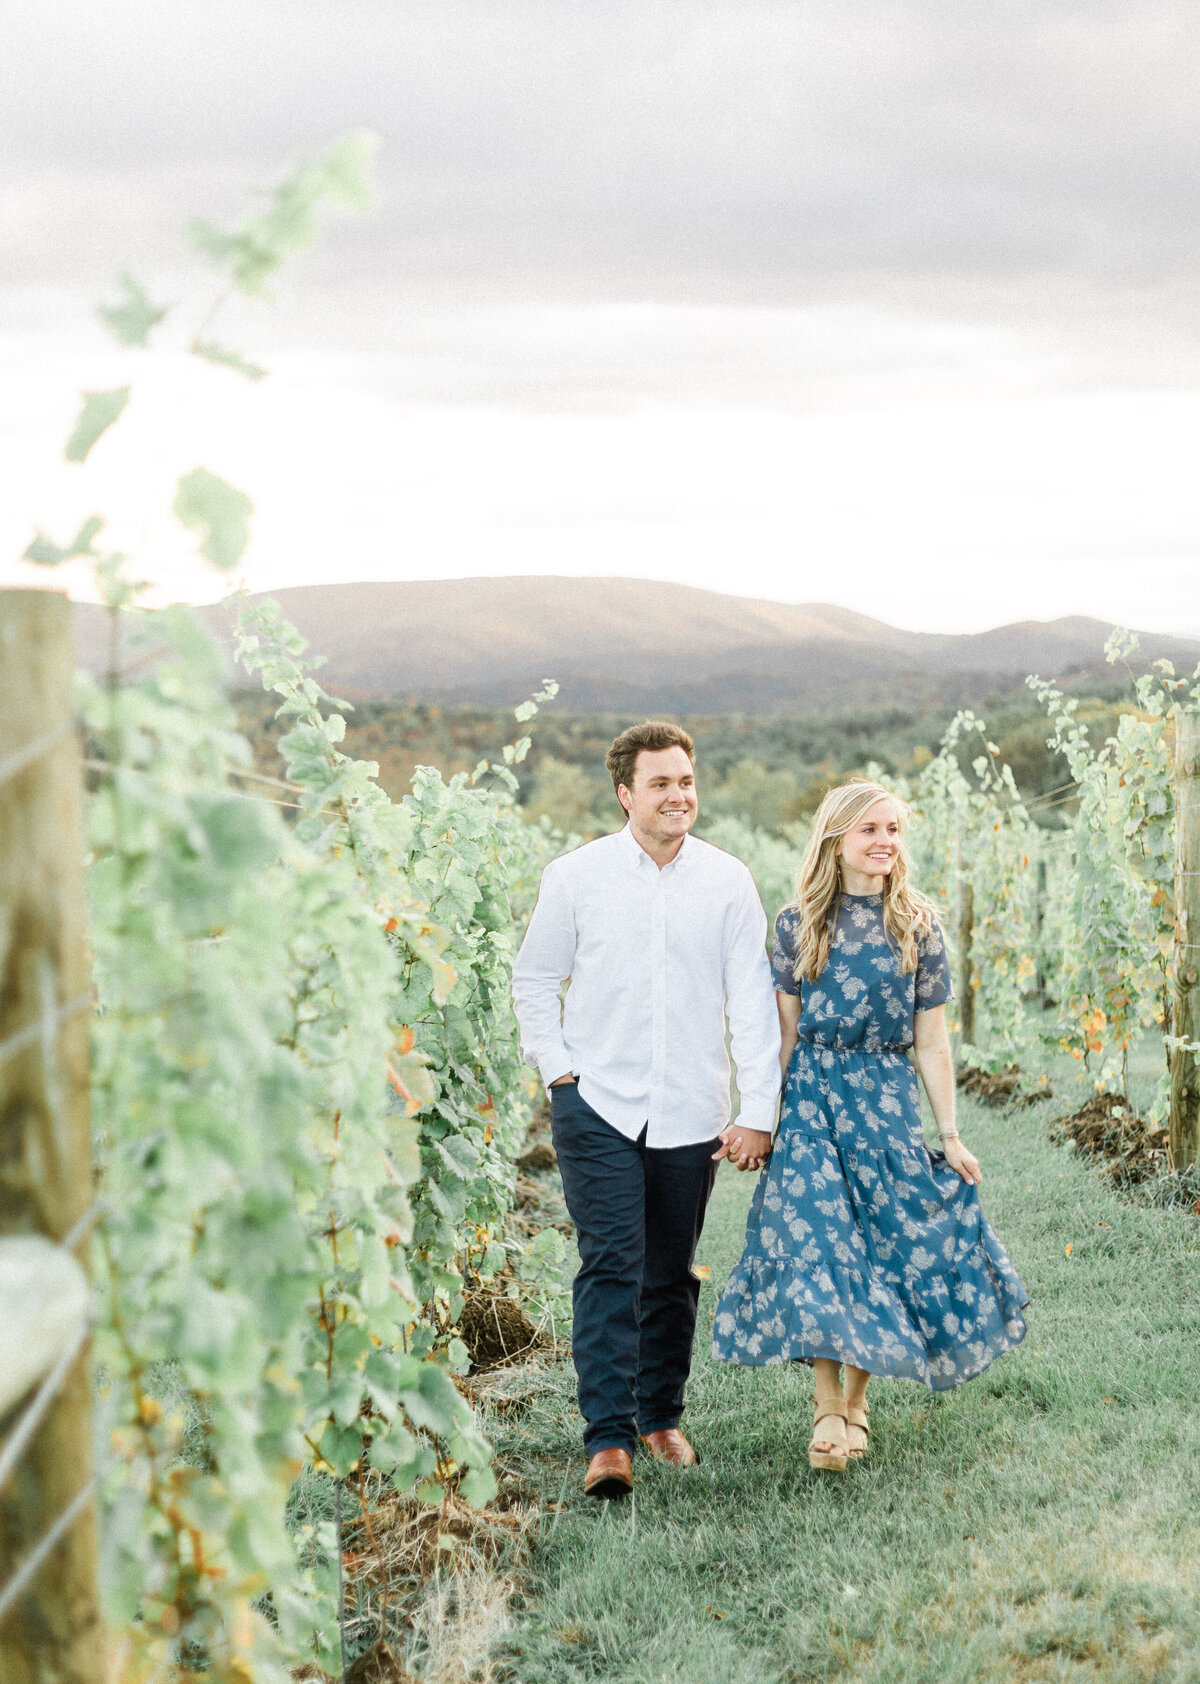 audra-jones-photography-athena-sam-12-ridges-vineyard-engagement-71